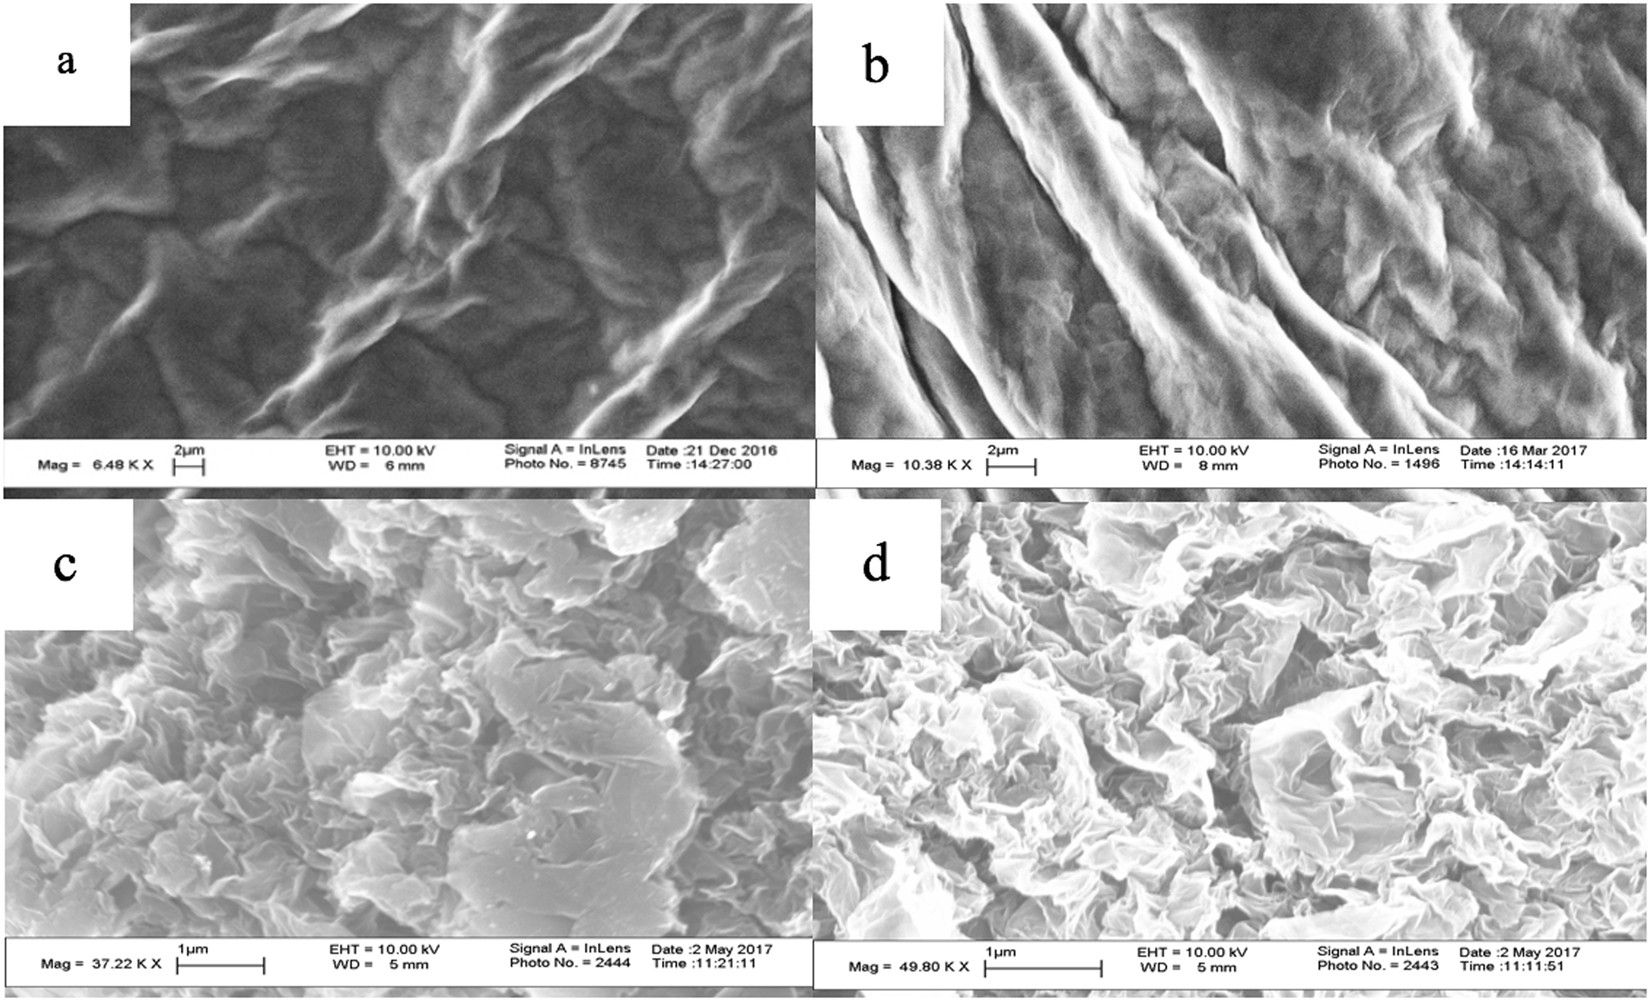 Stepwise Reduction of Graphene Oxide (GO) and Its Effects on